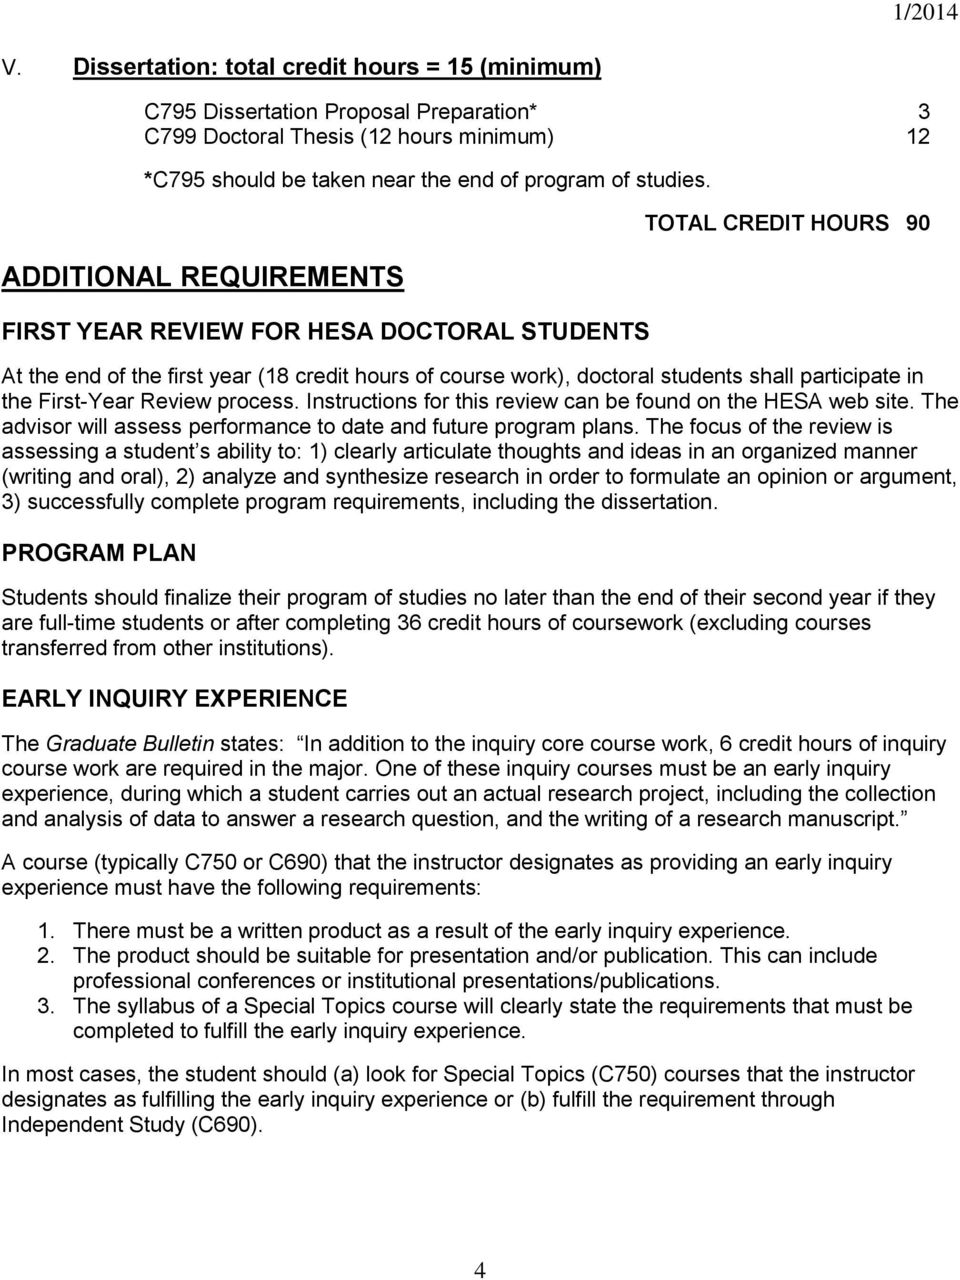 First-Year Review process. Instructions for this review can be found on the HESA web site. The advisor will assess performance to date and future program plans.